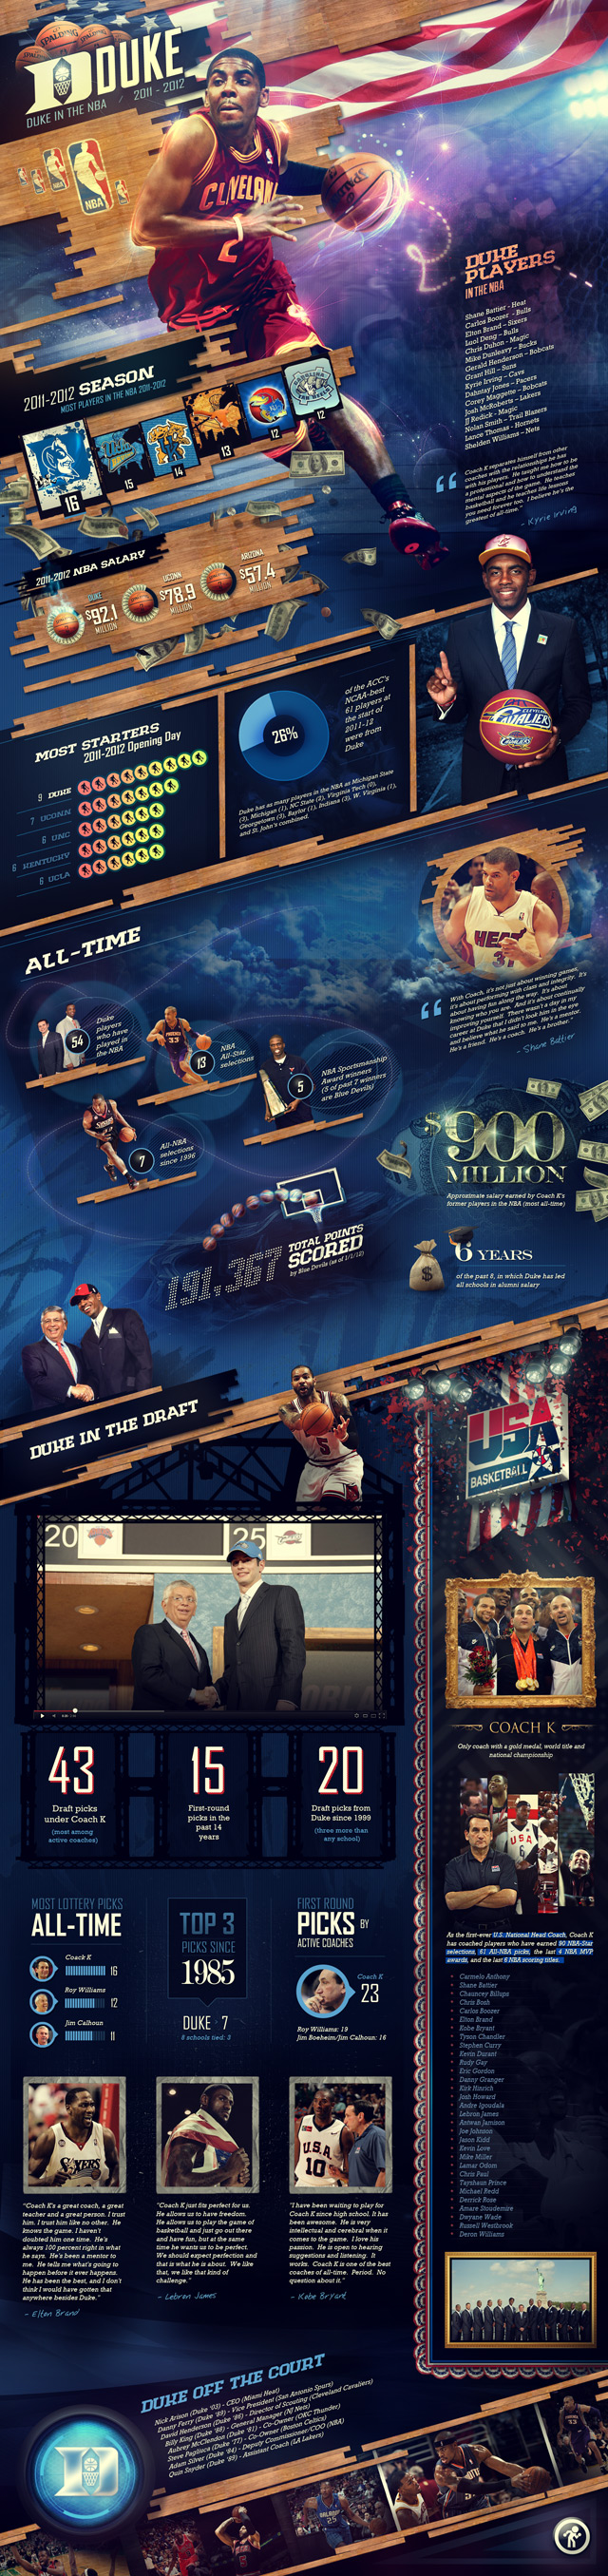 Duke In The NBA Infographic - YAPP™ by UnCommon Thinking